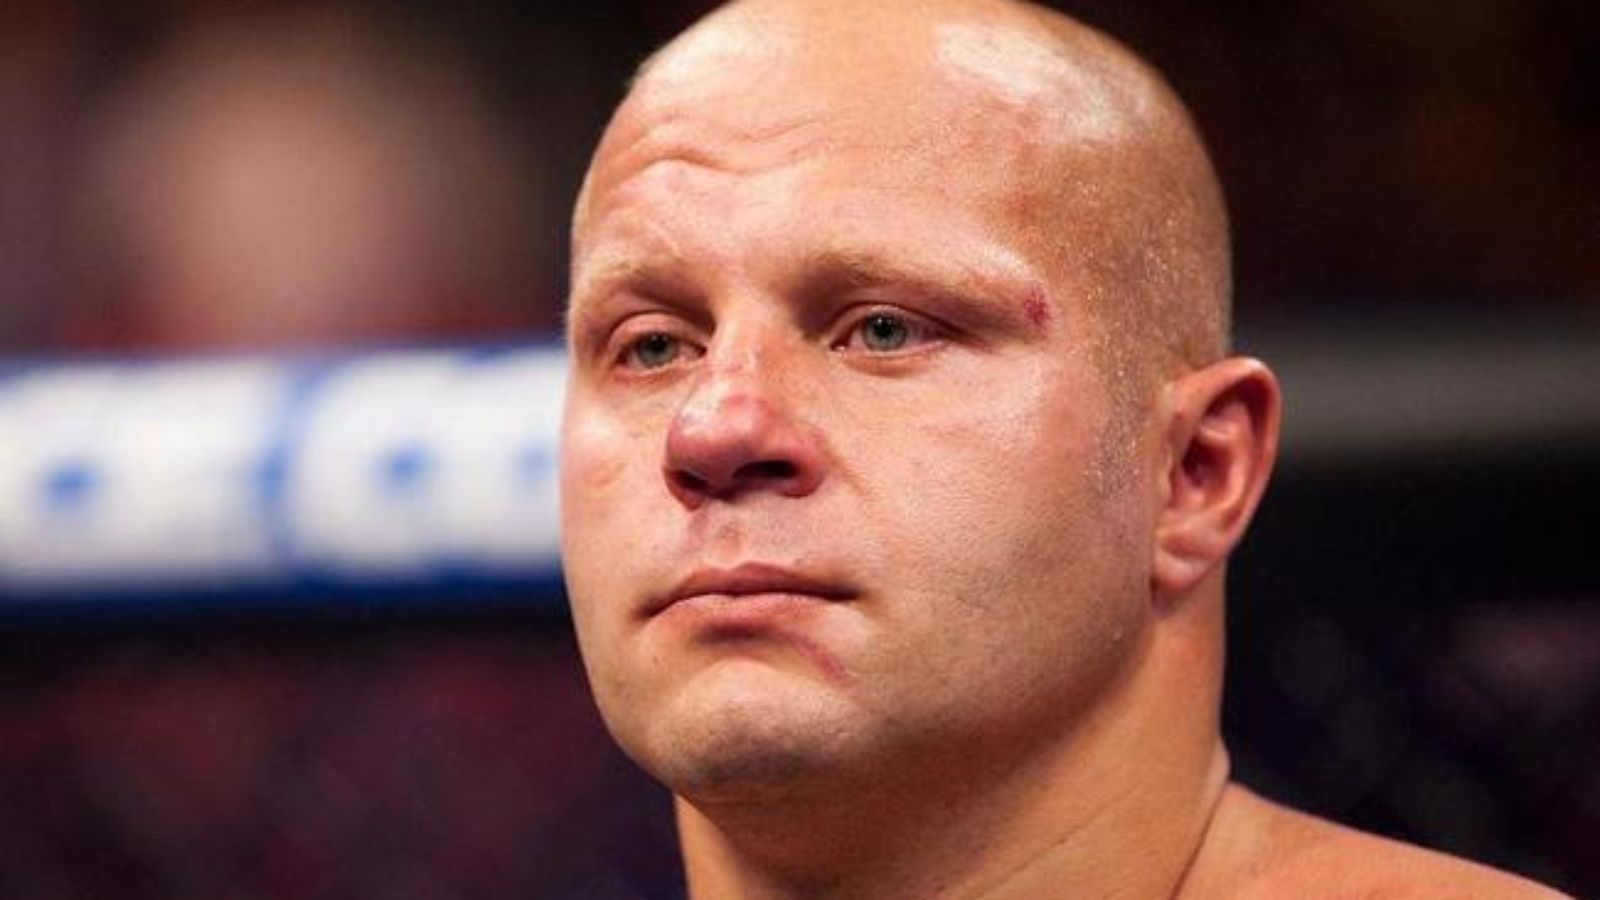 Bellator 214: Fedor Emelianenko is the GOAT despite loss